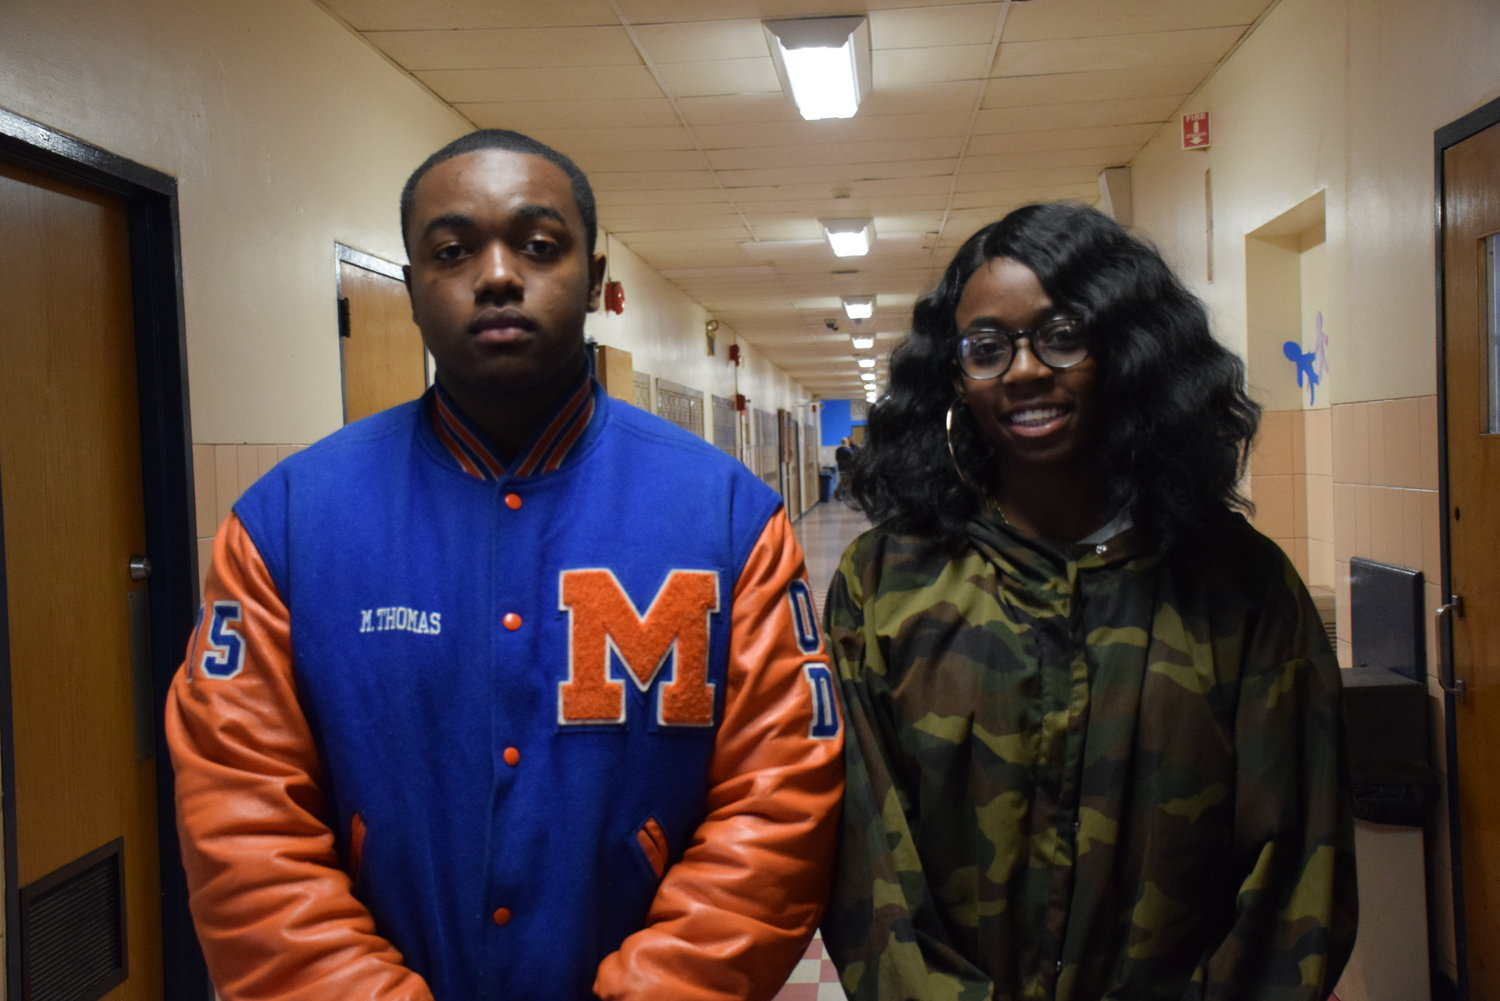 Malverne High School's Malachi Thomas and Oluwaseun Ajirotutu performed in chorus at the 2018 NYSSMA All-State Chorus from Nov. 29-Dec. 2.